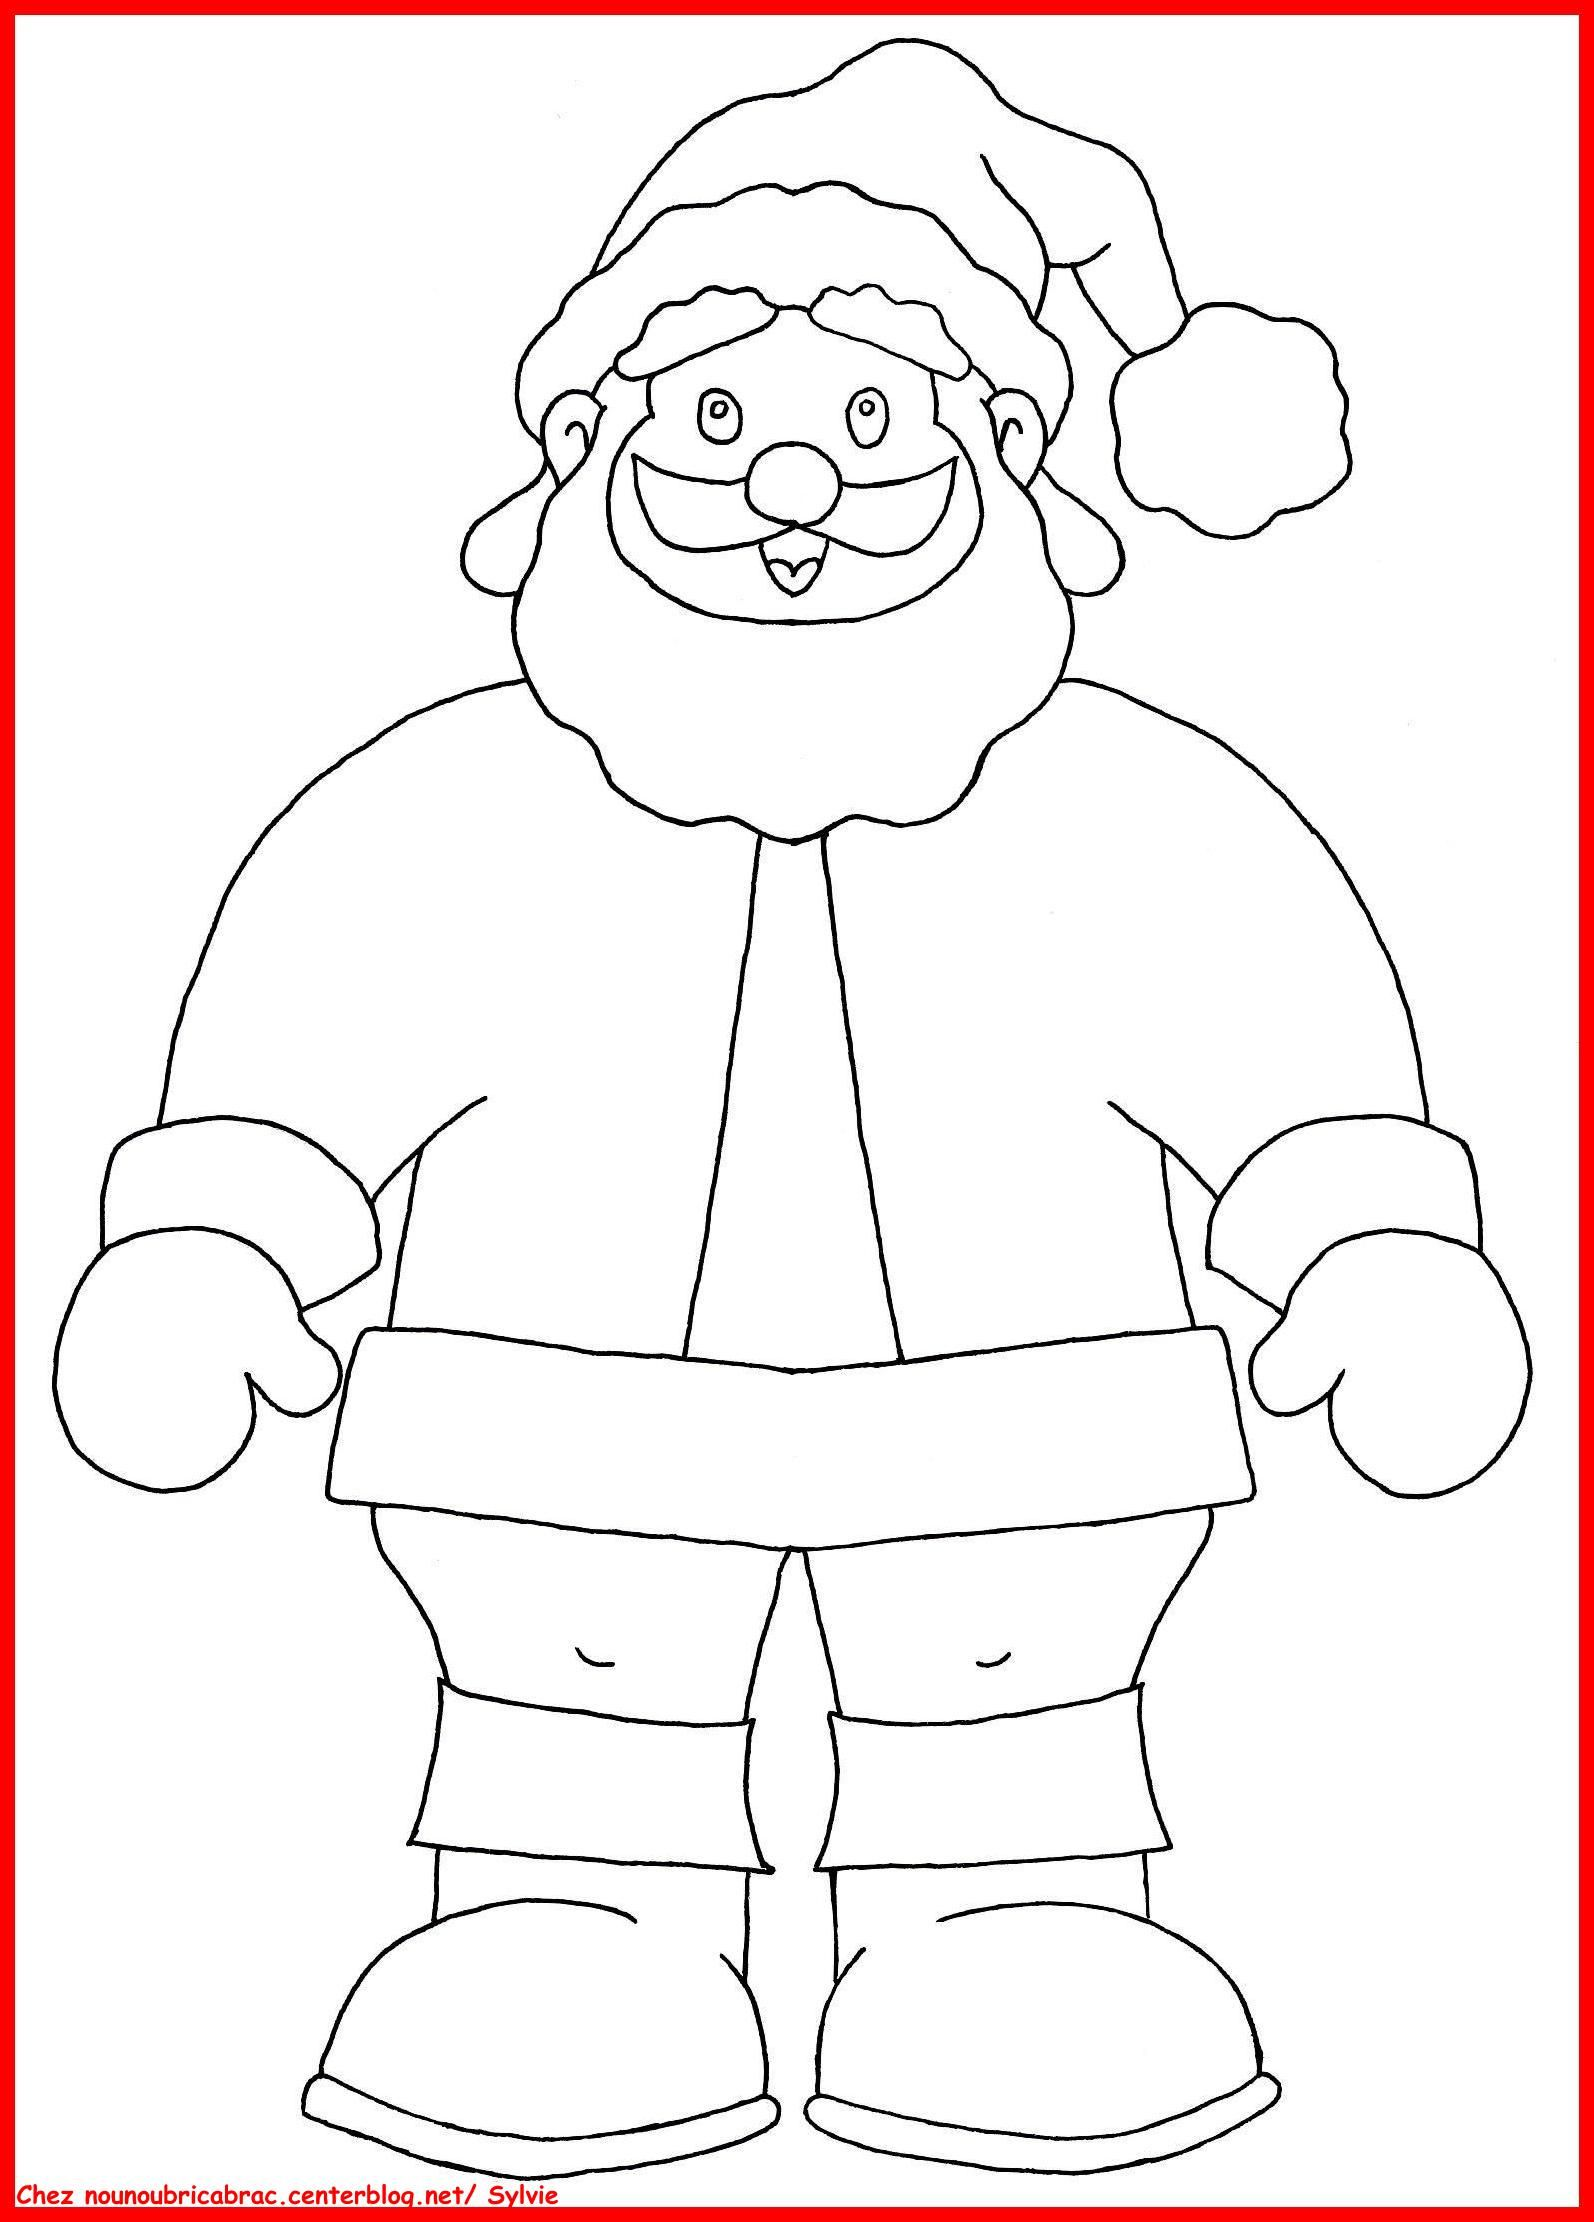 P re noel dessin search results calendar 2015 - Pere noel facile a dessiner ...